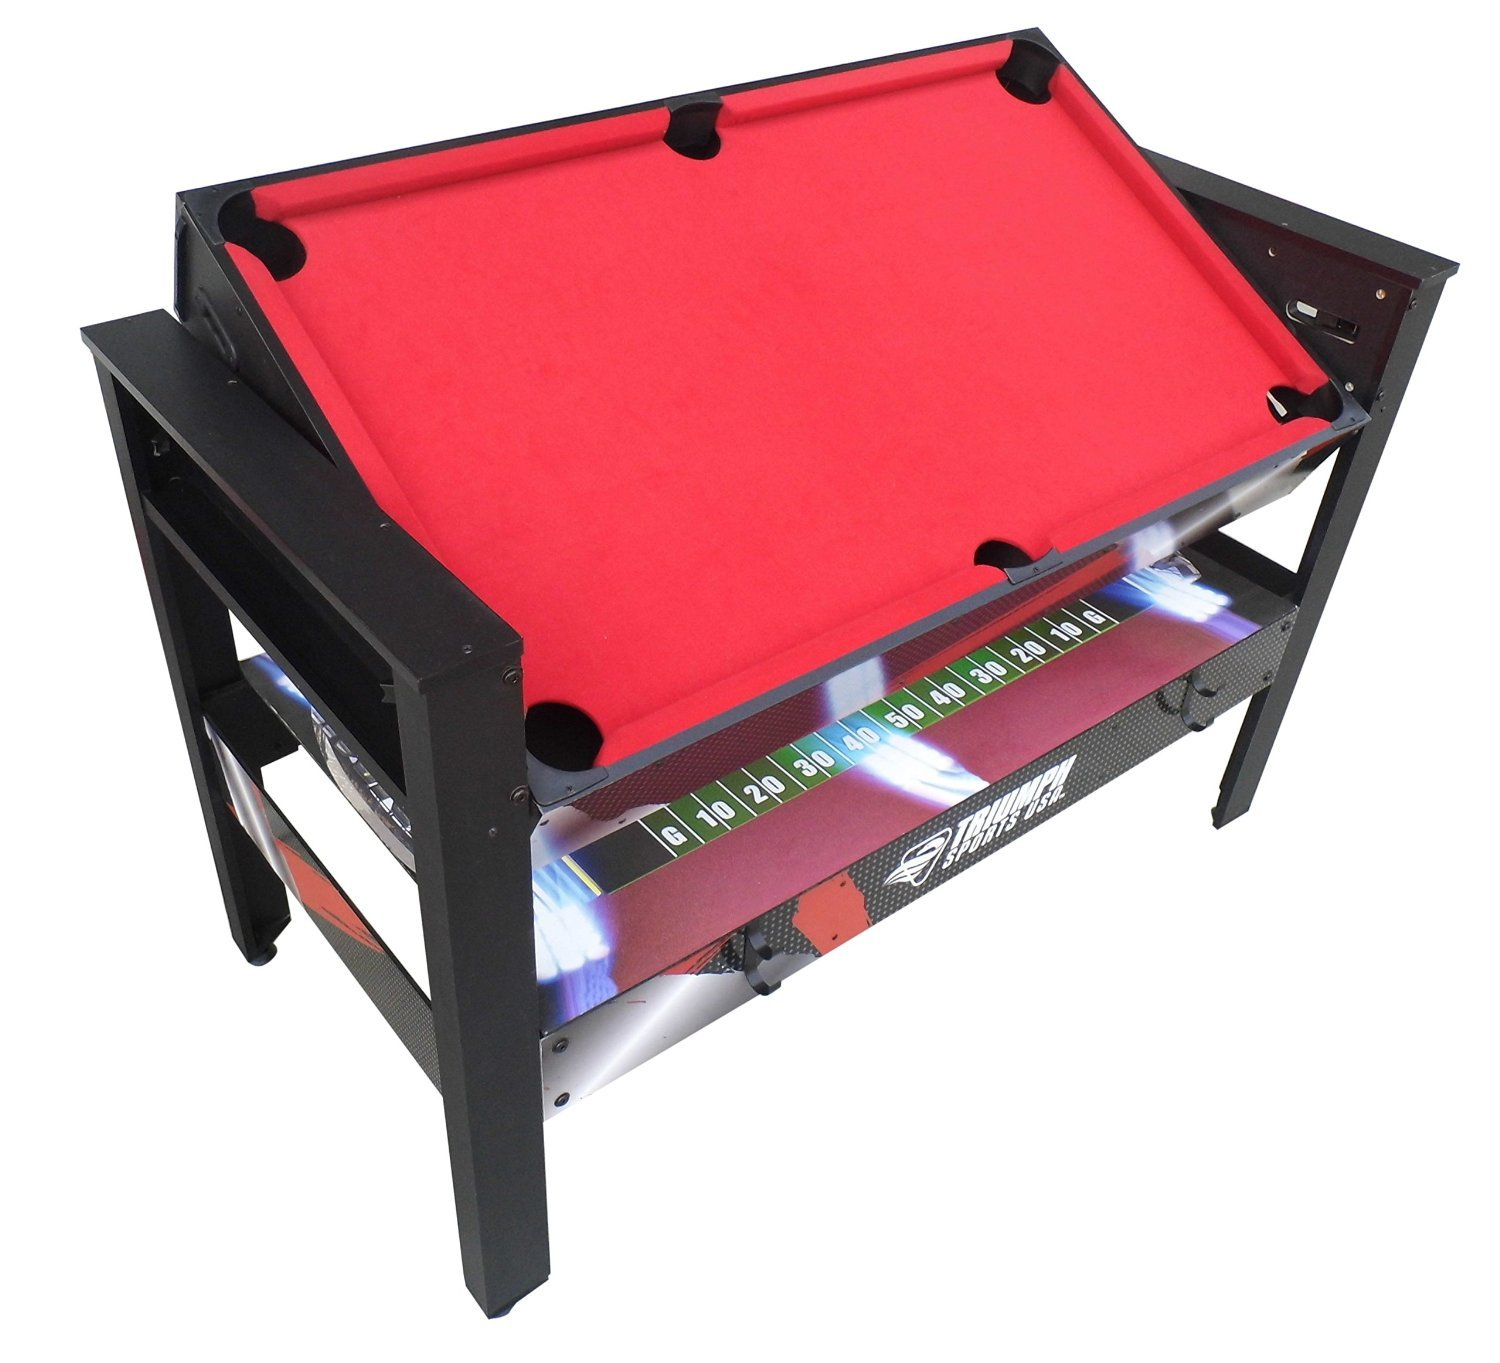 USA 4-in-1 4' Rotating Game TableMulit Action Arcade Style Play by Generic